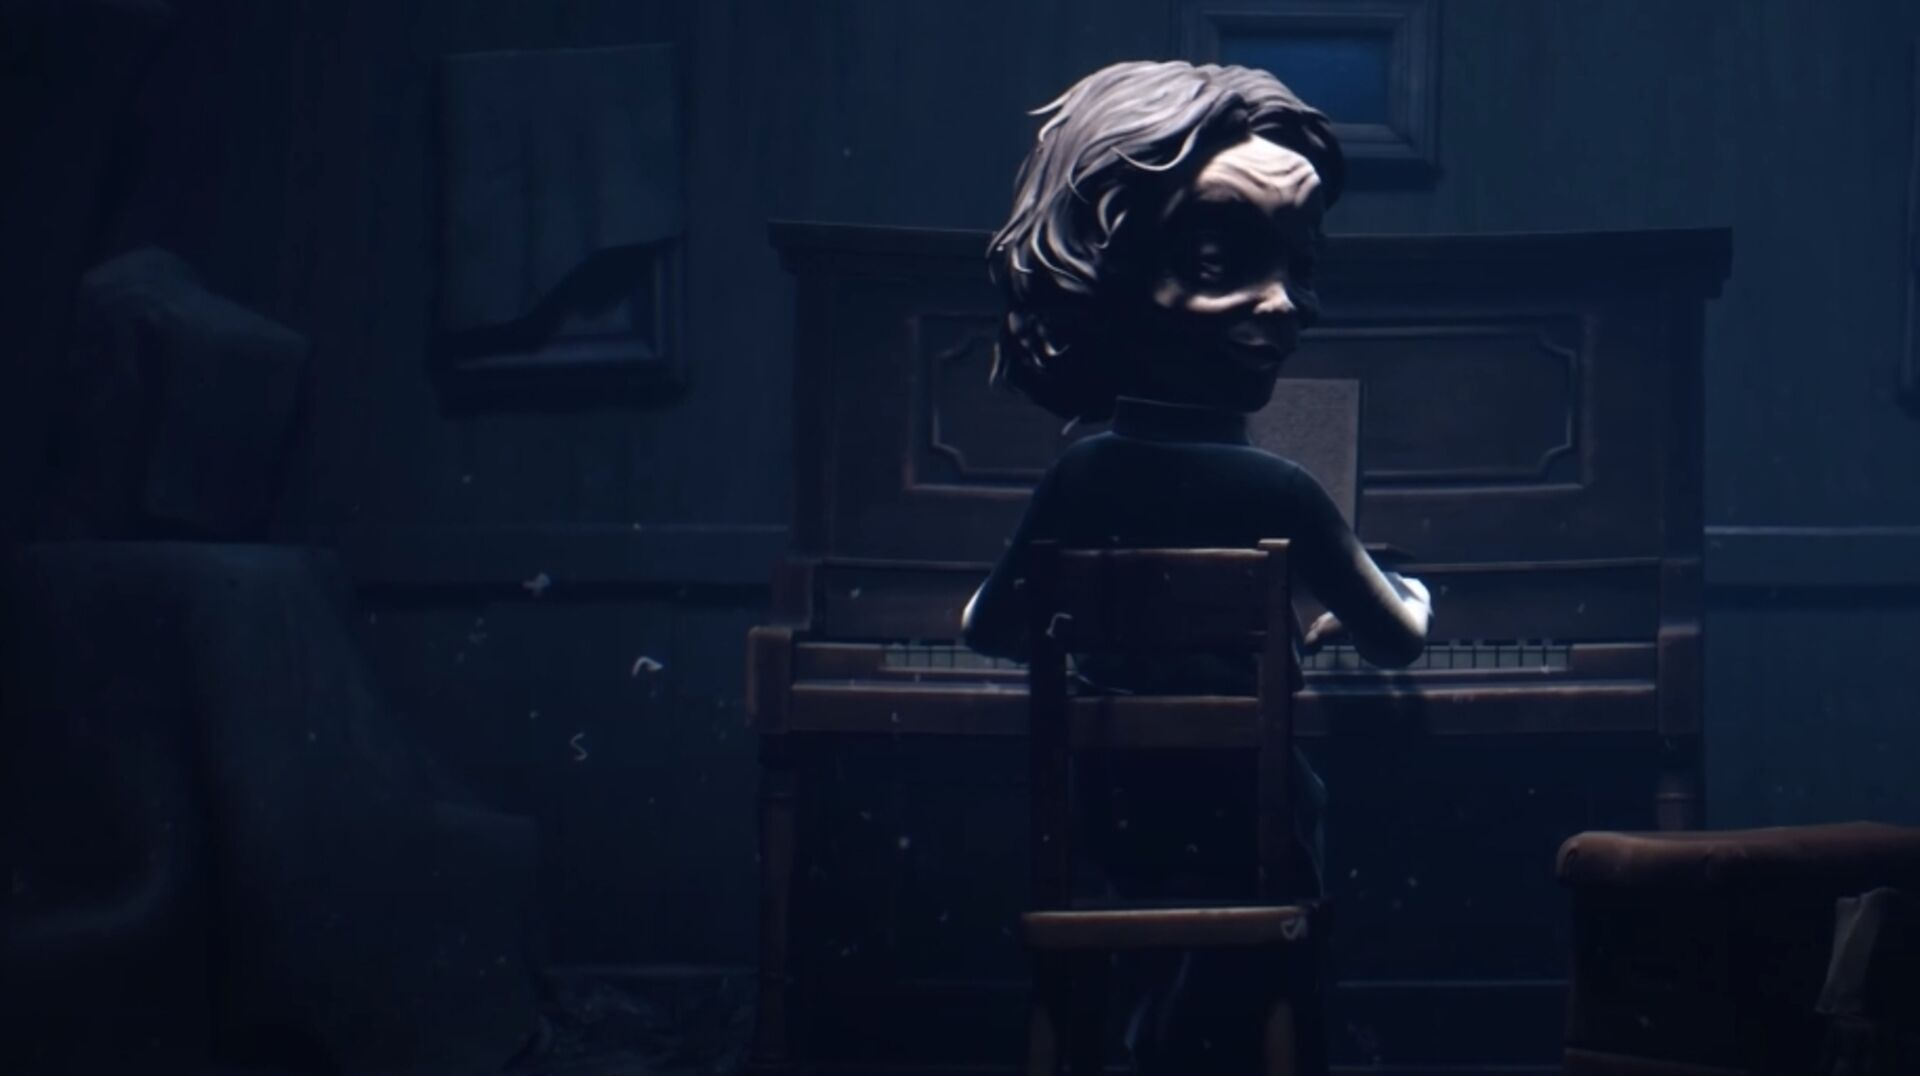 Little Nightmares 2 crawls onto screens next February • Eurogamer.net